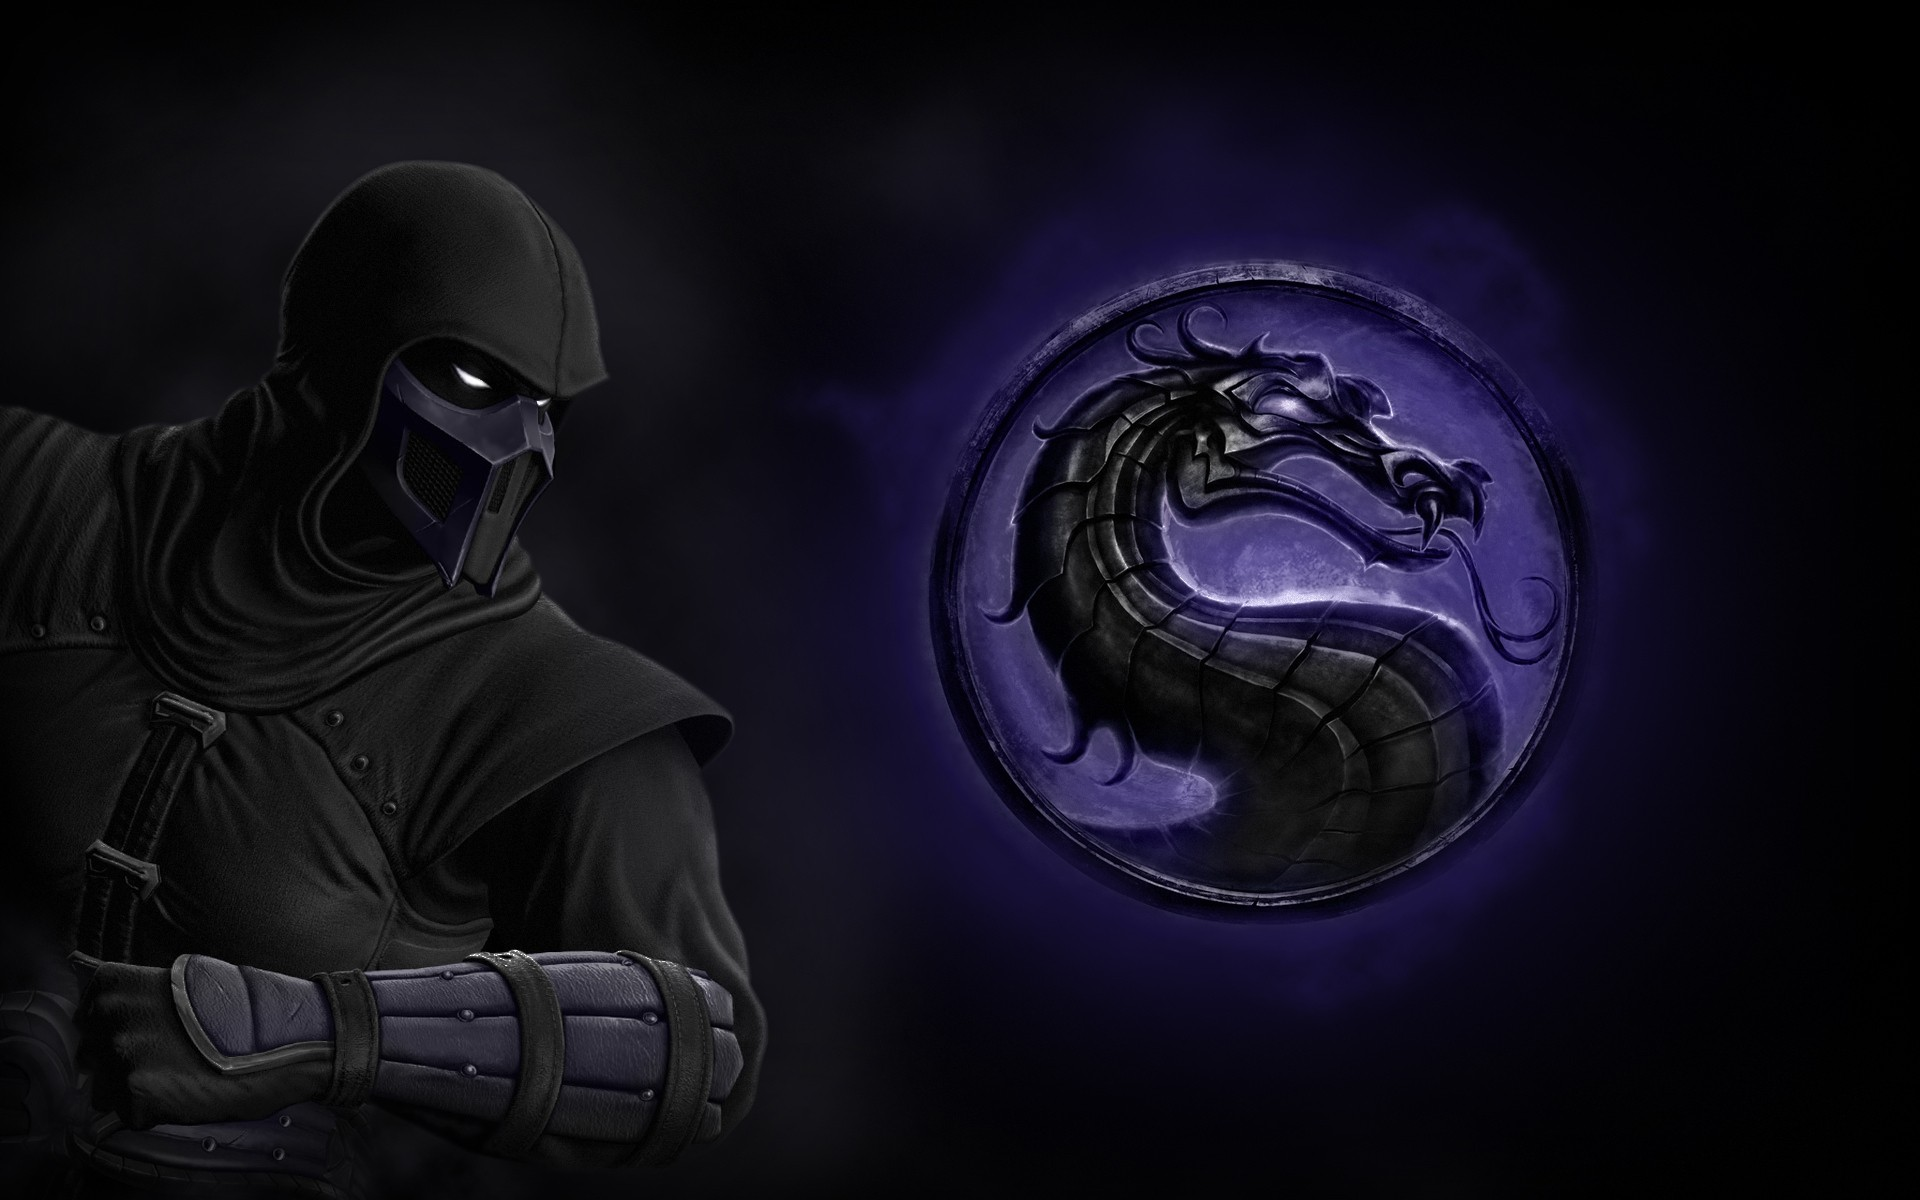 1080p mortal kombat logo wallpaper